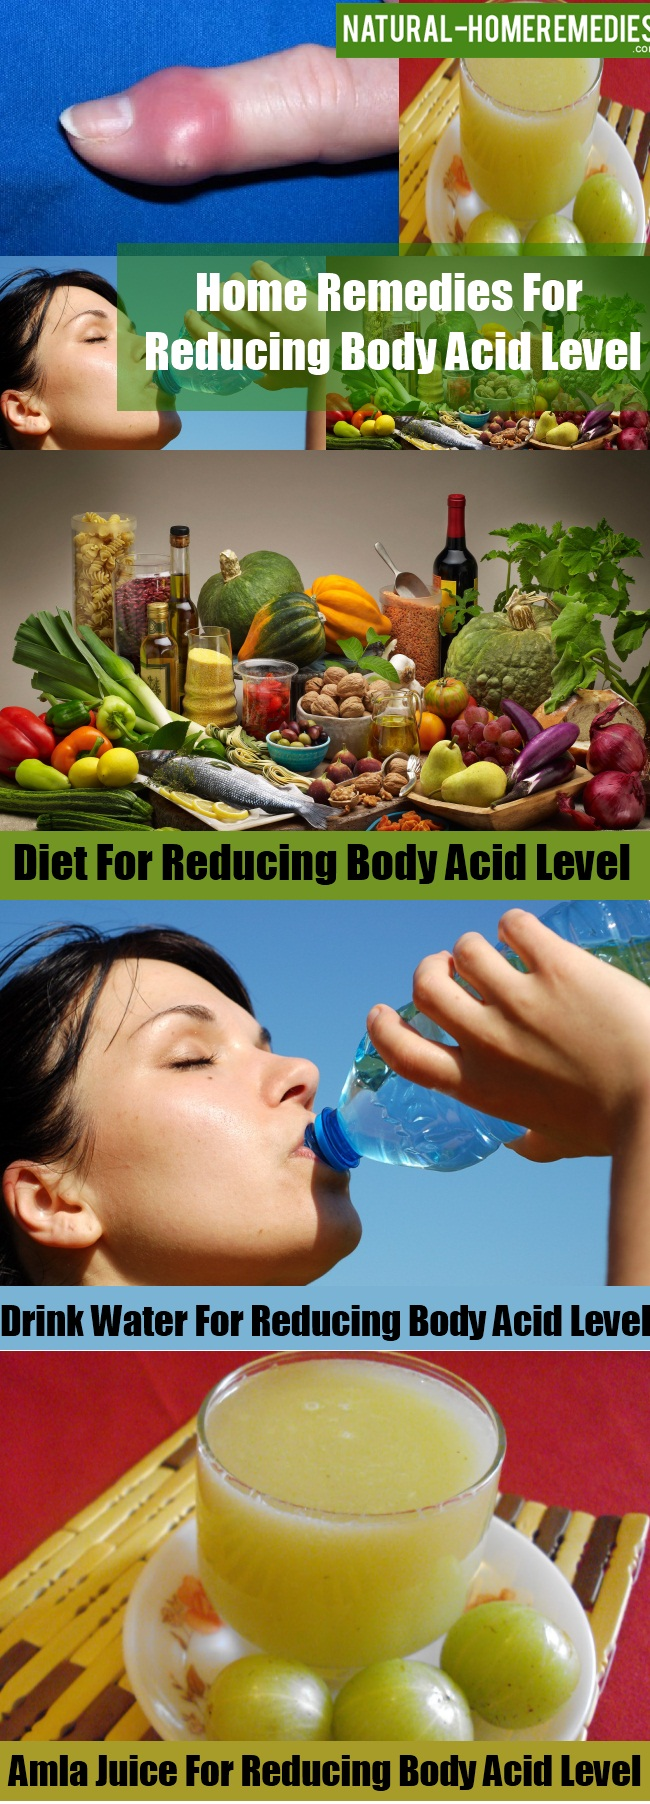 Remedies For Reducing Body Acid Level